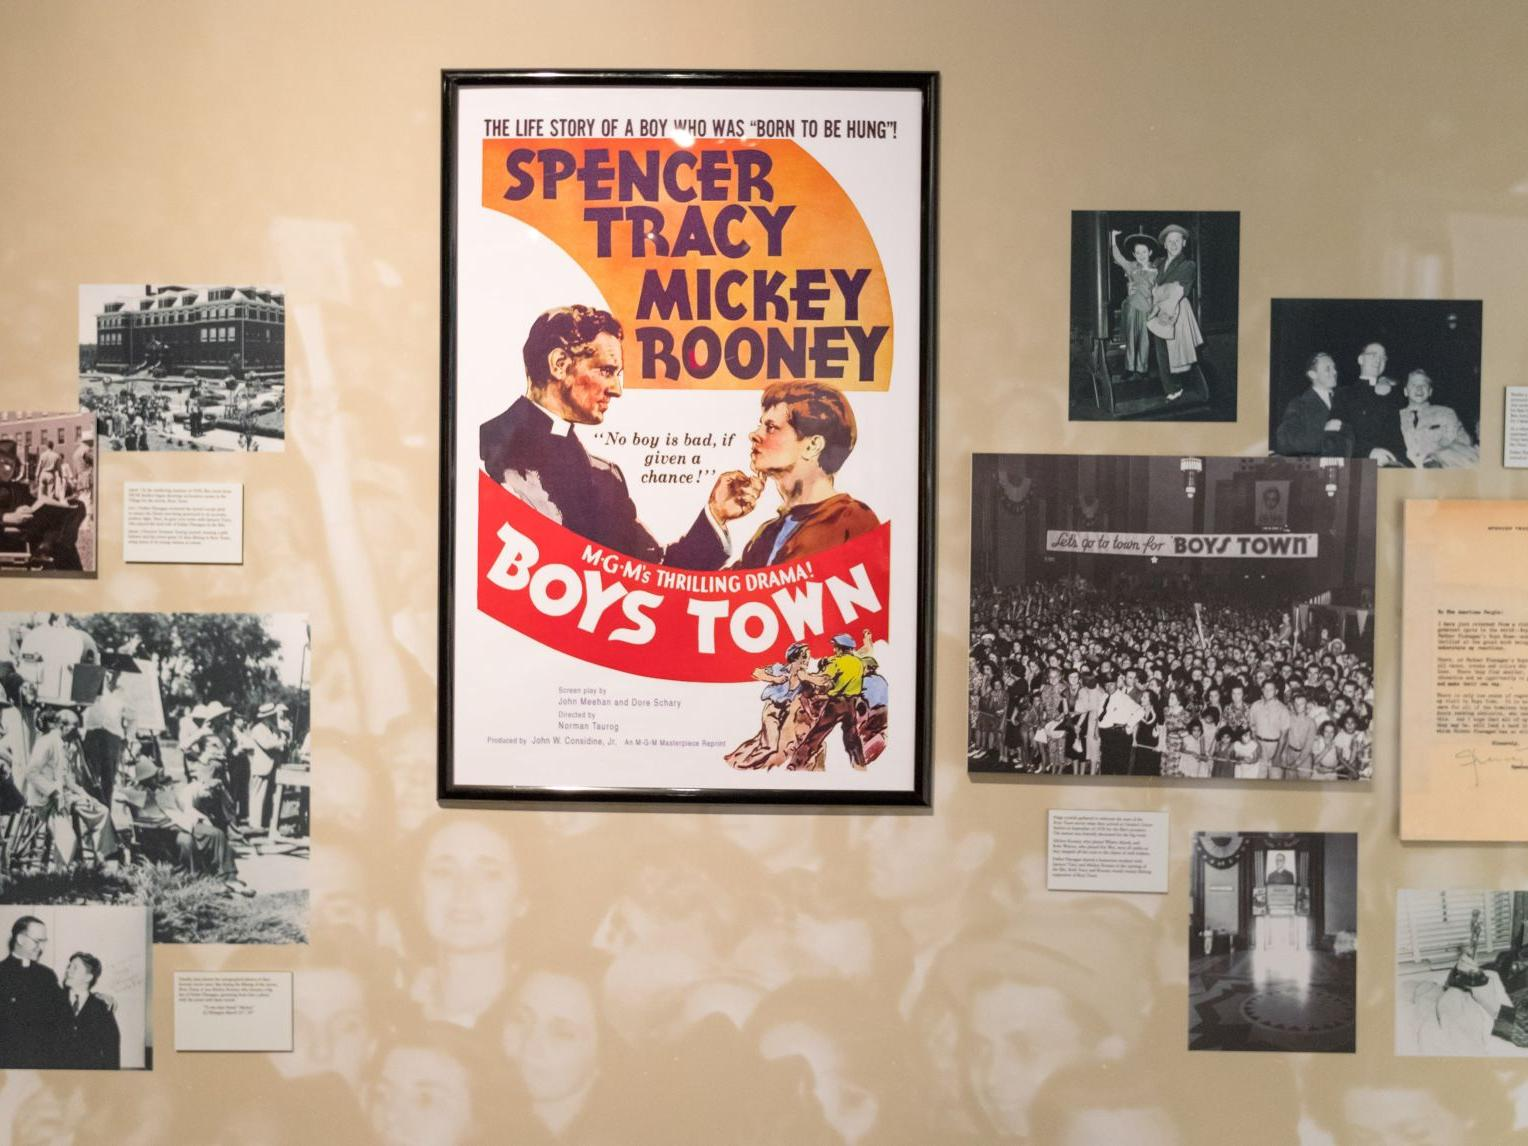 Durham Museum will show 1938 film 'Boys Town' for Boys Town's 100th anniversary